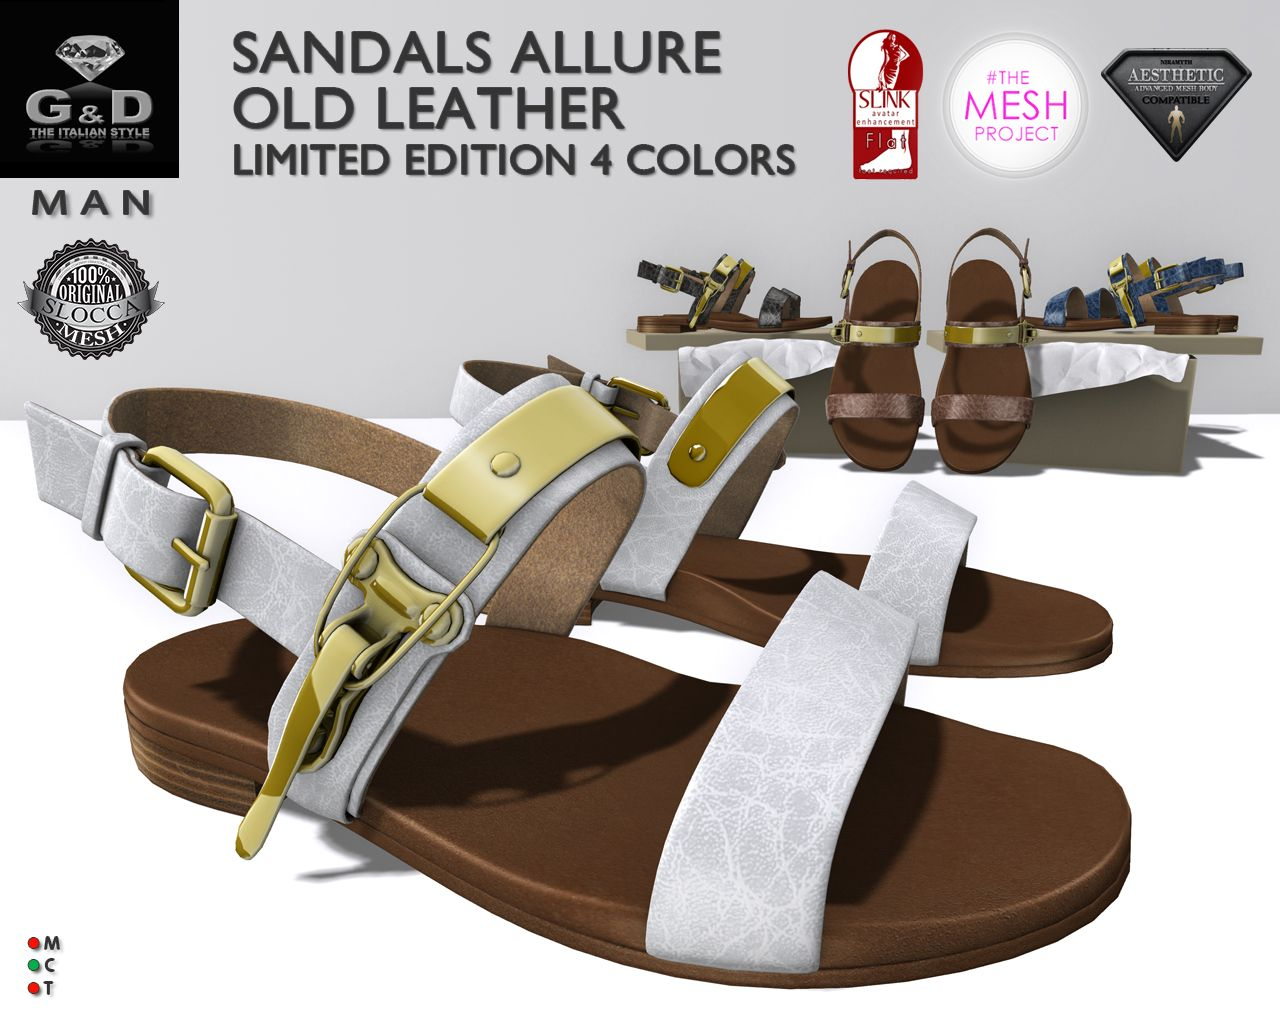 Exclusive for MOF G&D MAN Sandals Flat Allure Old Leather LE adv http://maps.secondlife.com/secondlife/Campagnola/220/96/23